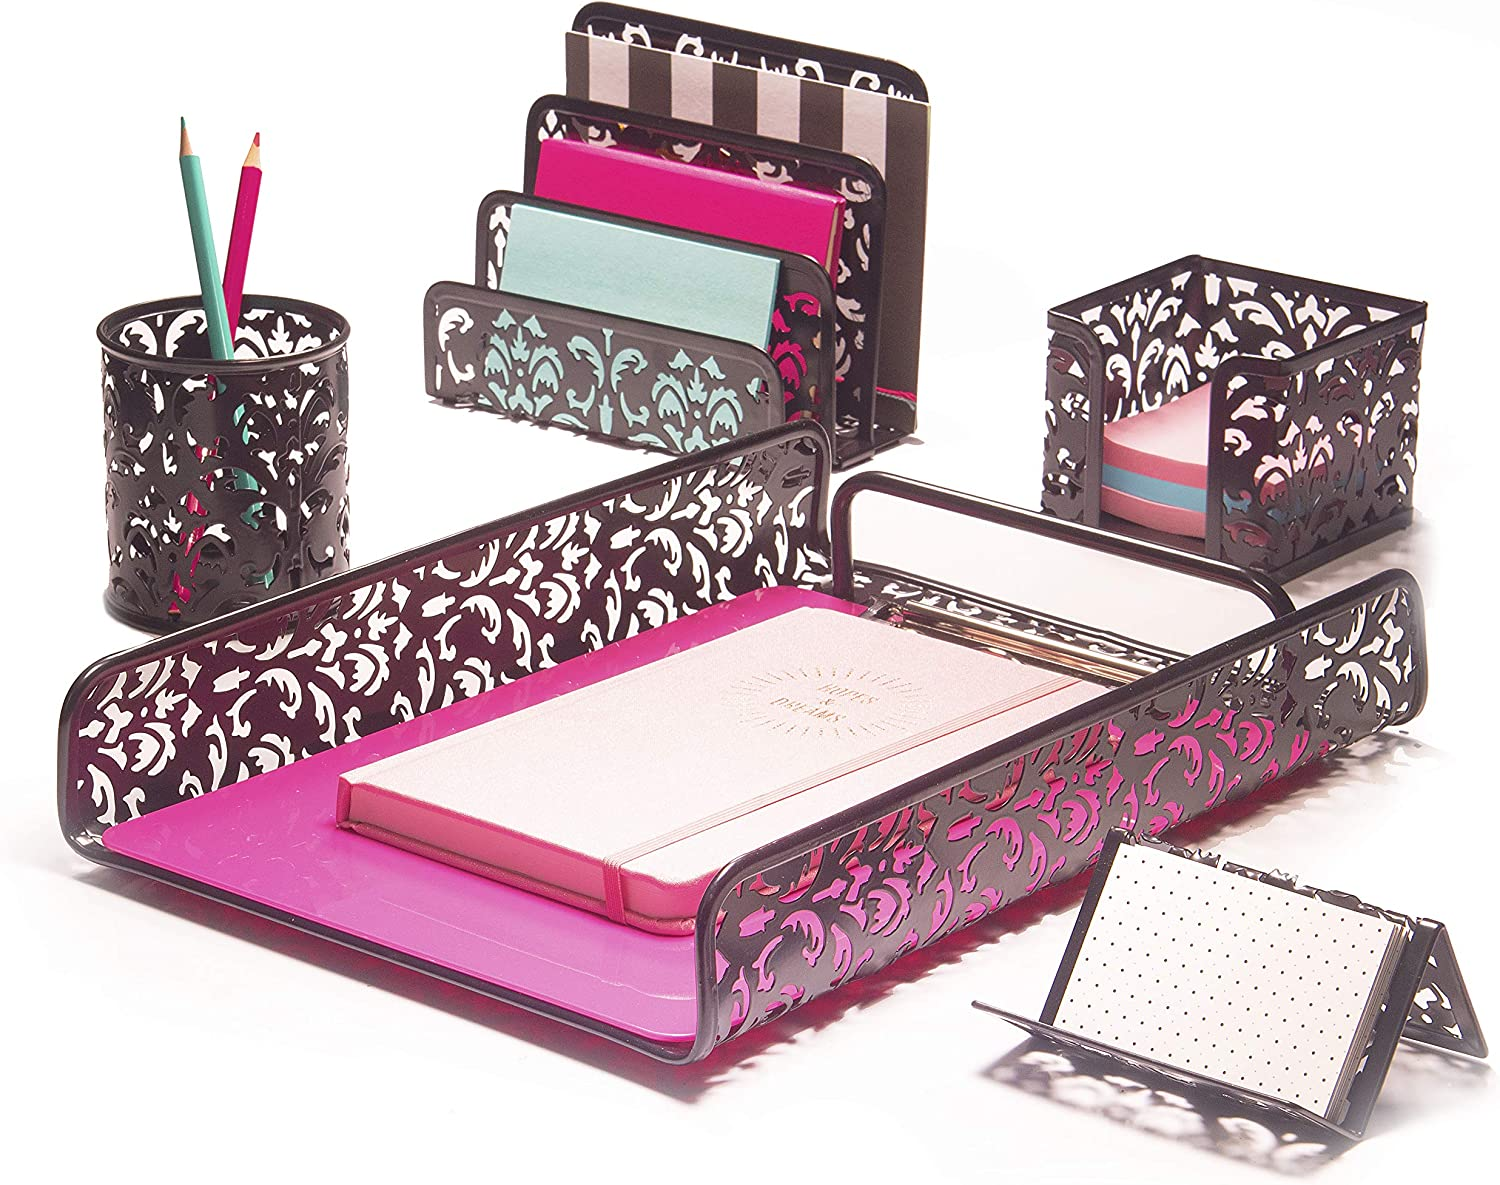 Hudstill Black Cute Desk Organizer Set for Women and Girls in Damask Design with 5 Office Supplies Accessories : File Tray, Mail Sorter, Pen Cup, Sticky Notes Holder and Business Card Holder